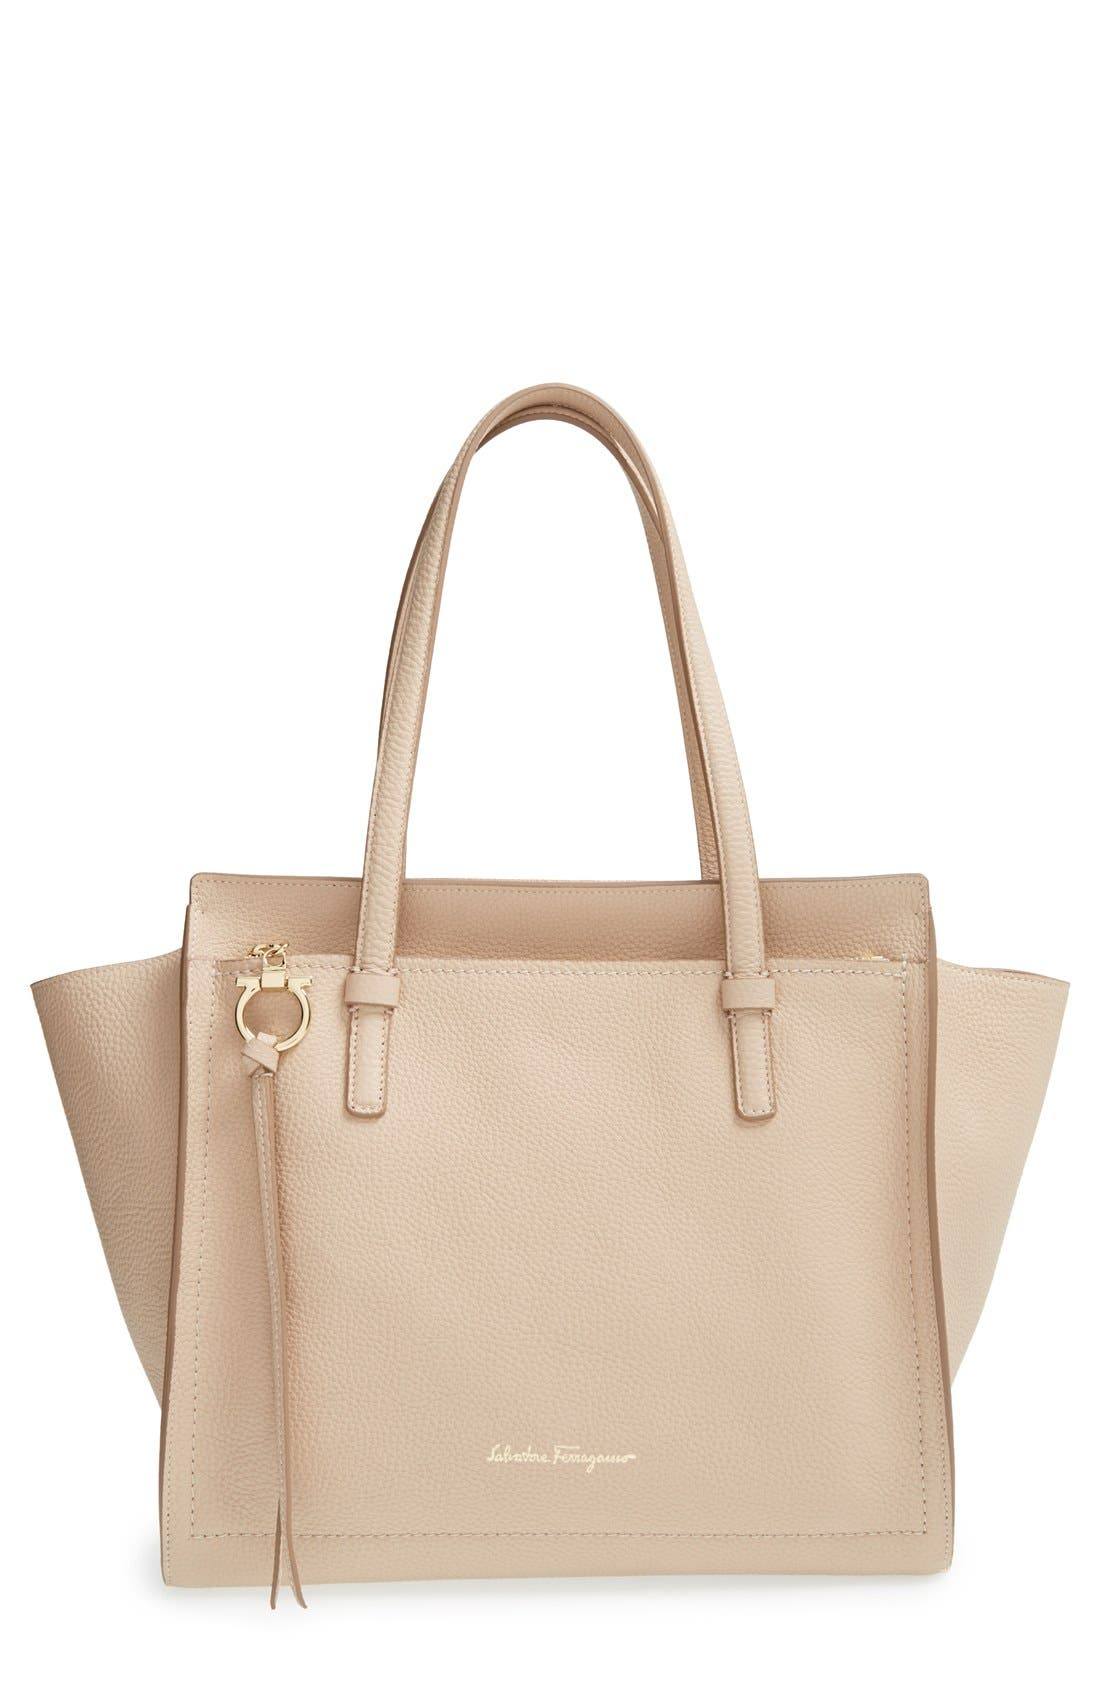 Salvatore Ferragamo Medium Amy Calfskin Leather Tote